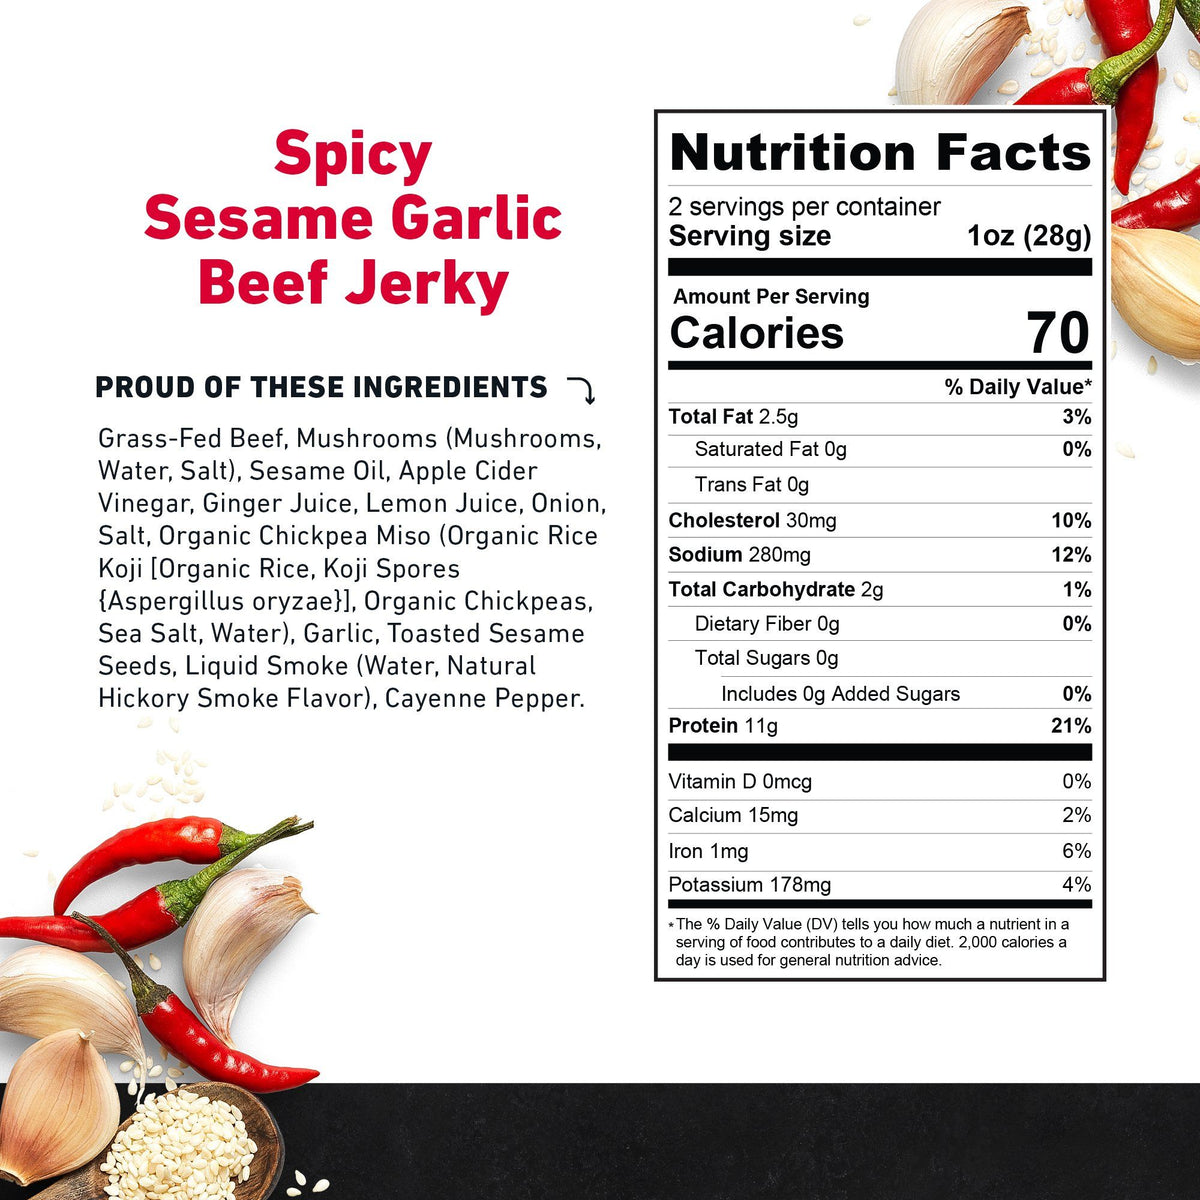 Zero Sugar Beef Jerky Spicy Sesame Garlic Nutritional Information